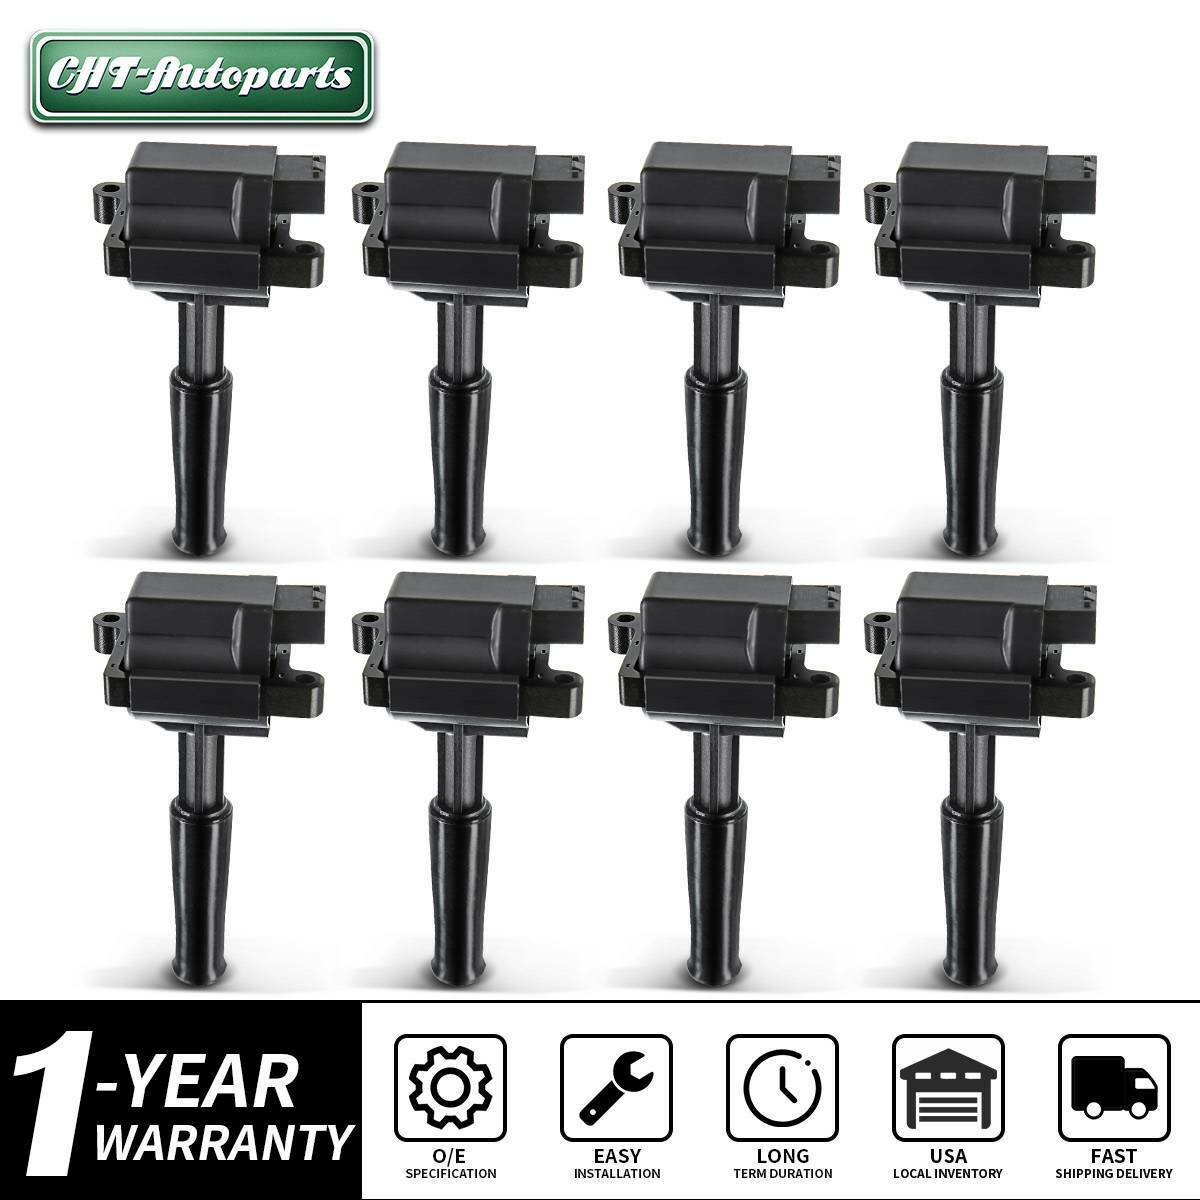 Ignition Coil Pack for Jaguar Vanden Plas XJ8 XJR XK8 XKR 1999-2003 4.0L Petrol